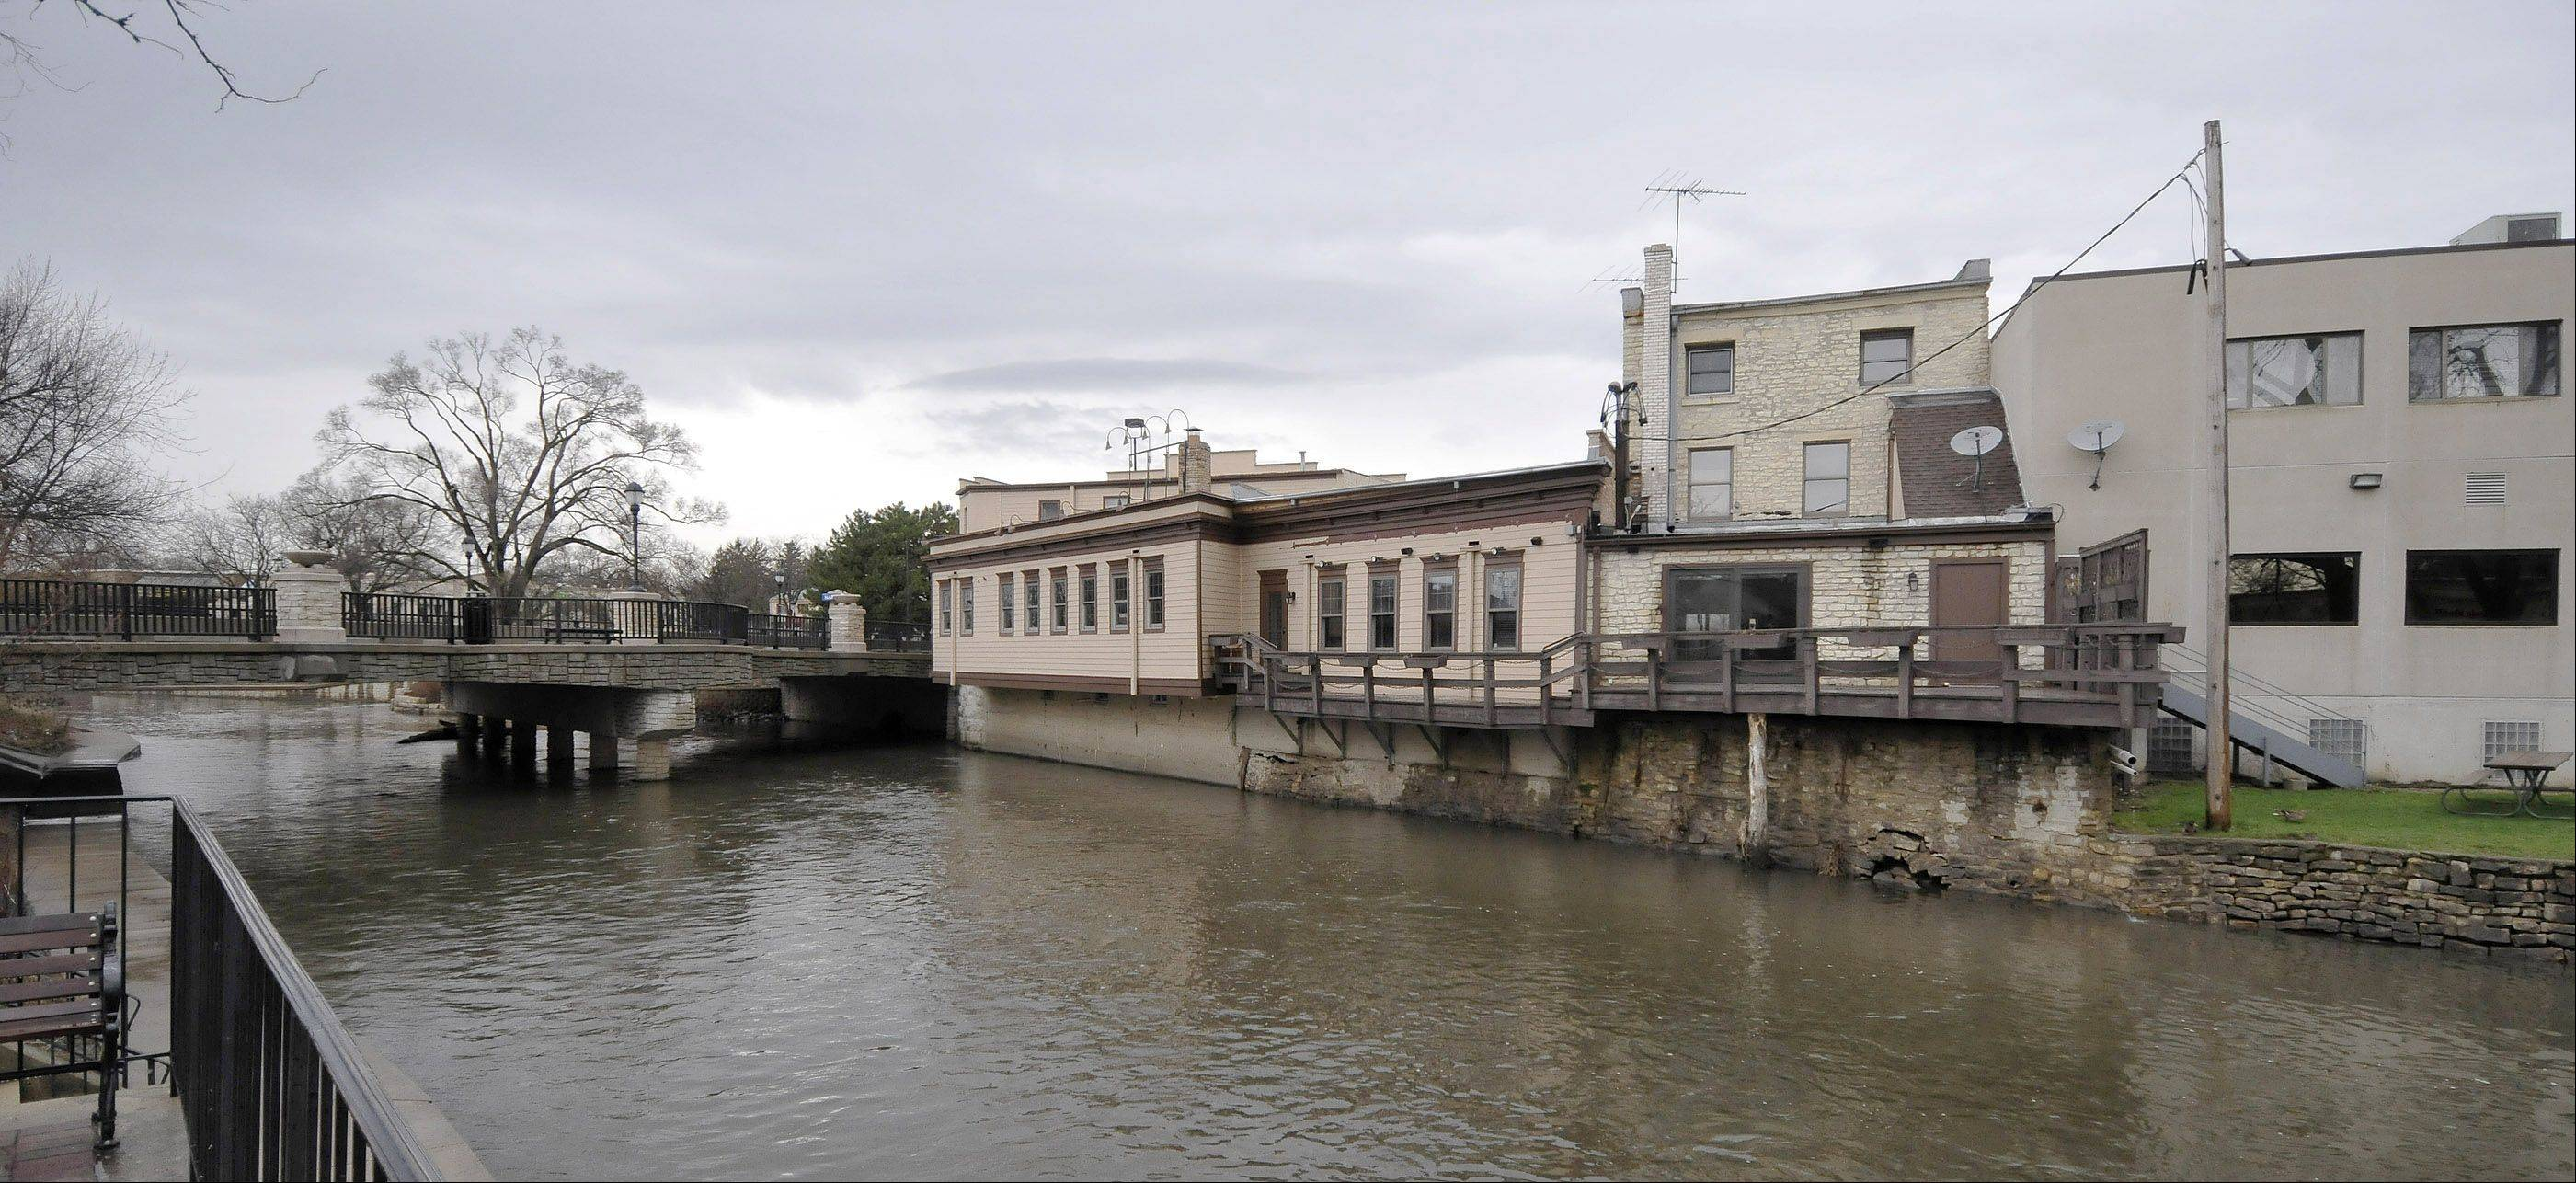 Ballydoyle owners hope to turn this view of the rear exterior along the DuPage River into a vibrant dining and drinking spot.